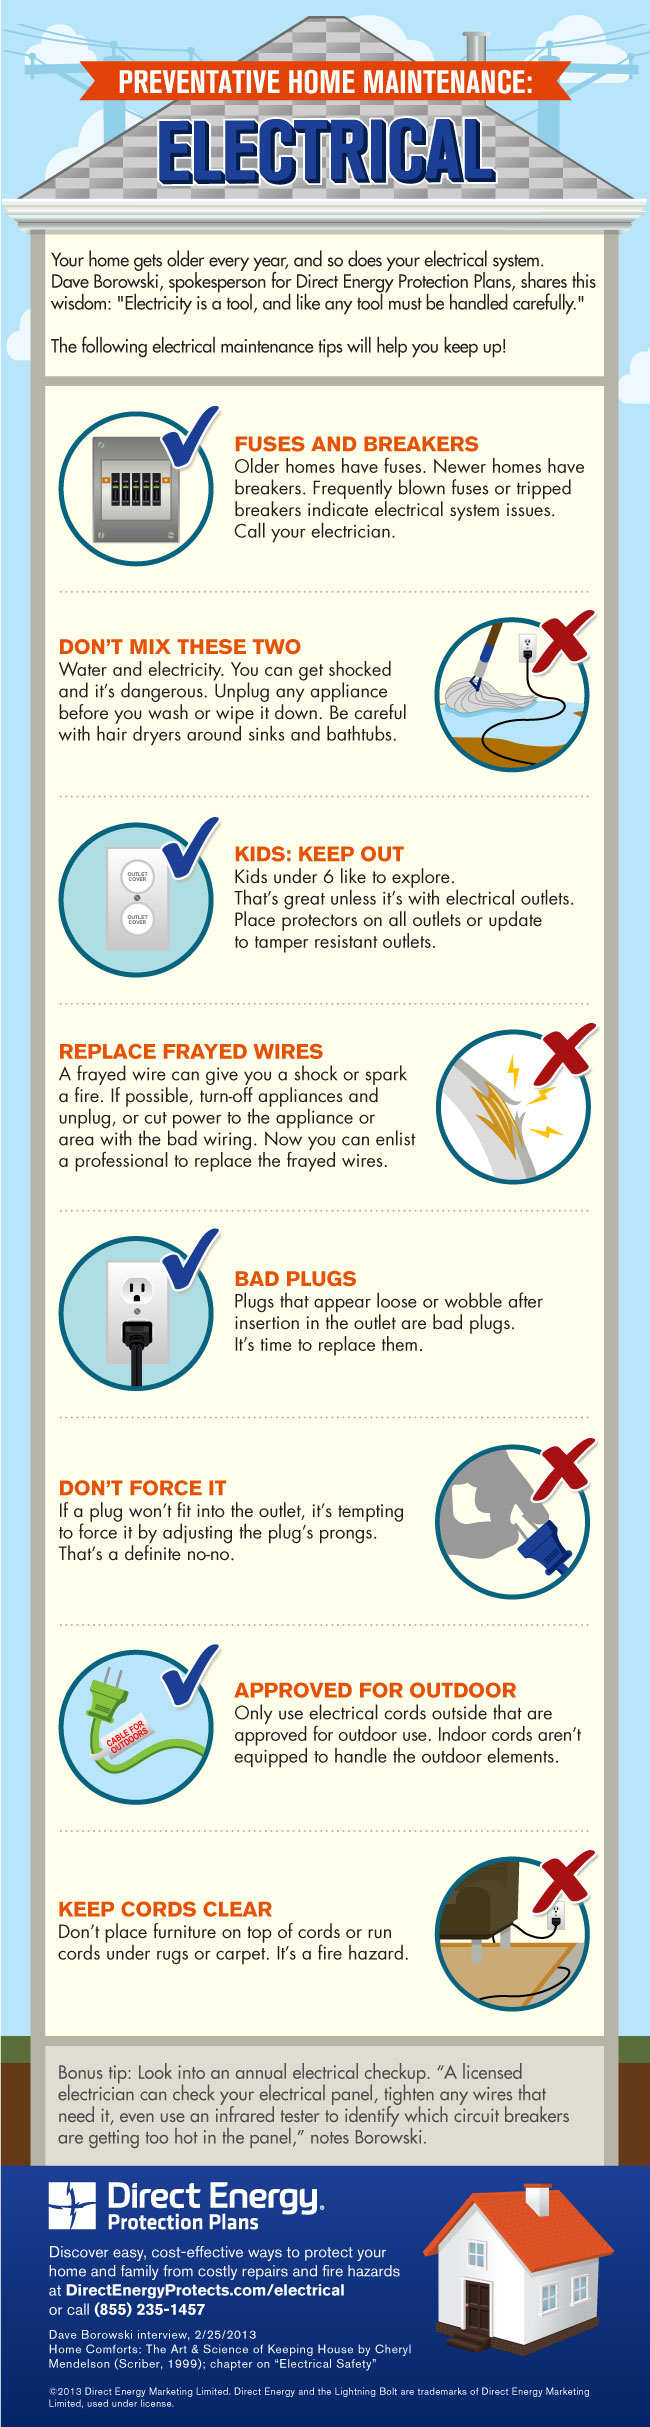 one-alpha-electrical-safety-infographic